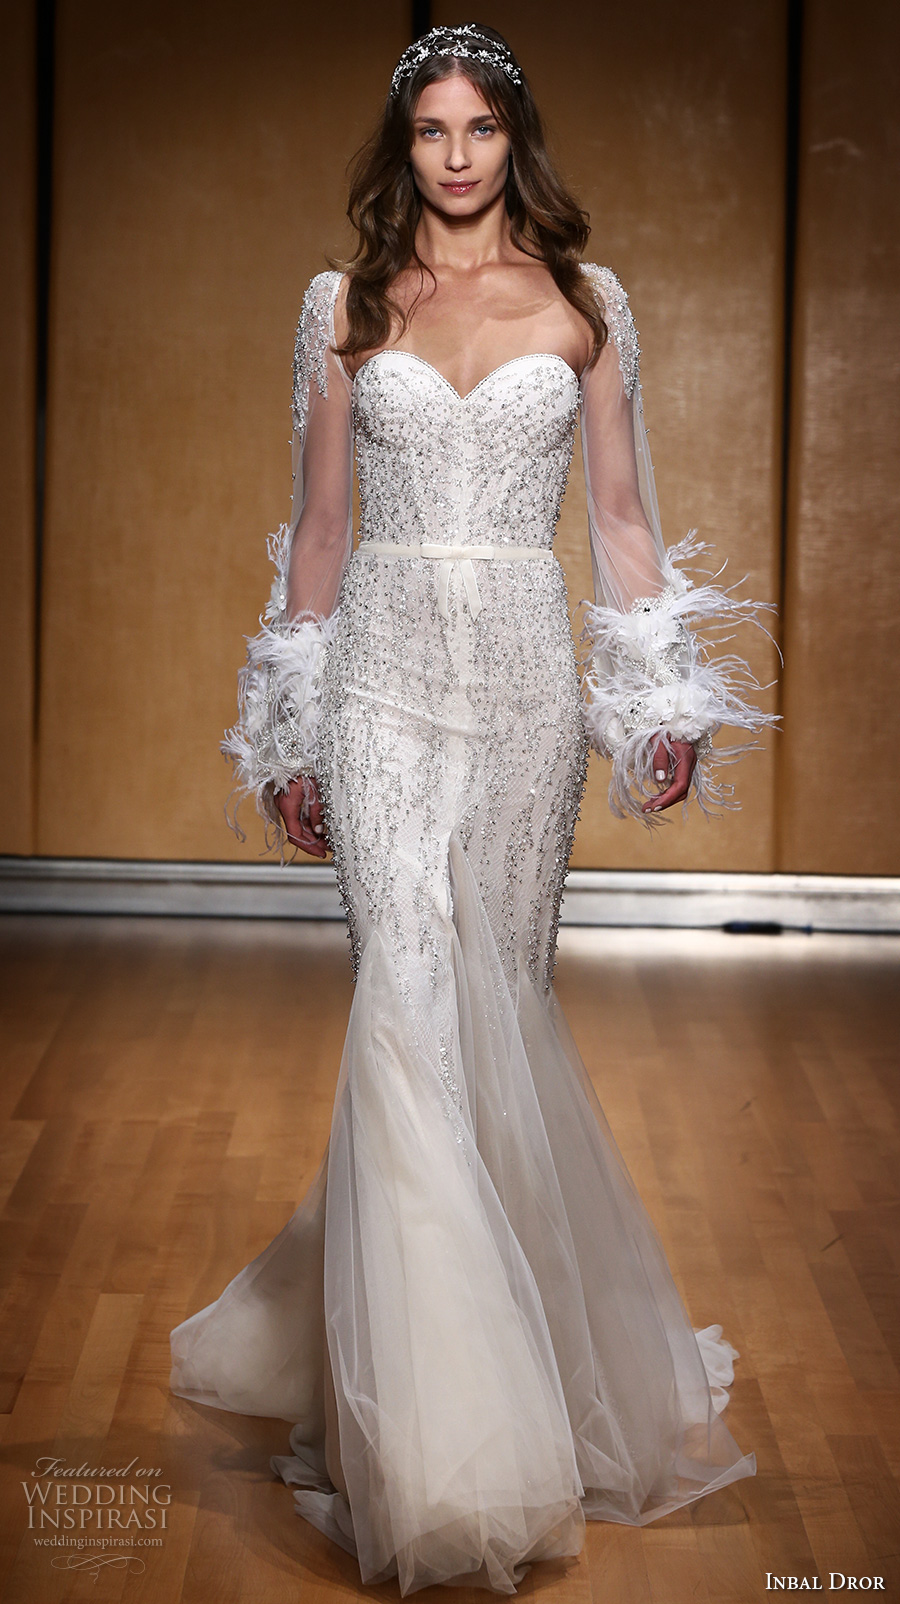 inbal dror 2017 bridal long sleeves strapless sweetheart neckline heavily embellished bodice elegant glamorous sheath wedding dress sweep train (007) mv